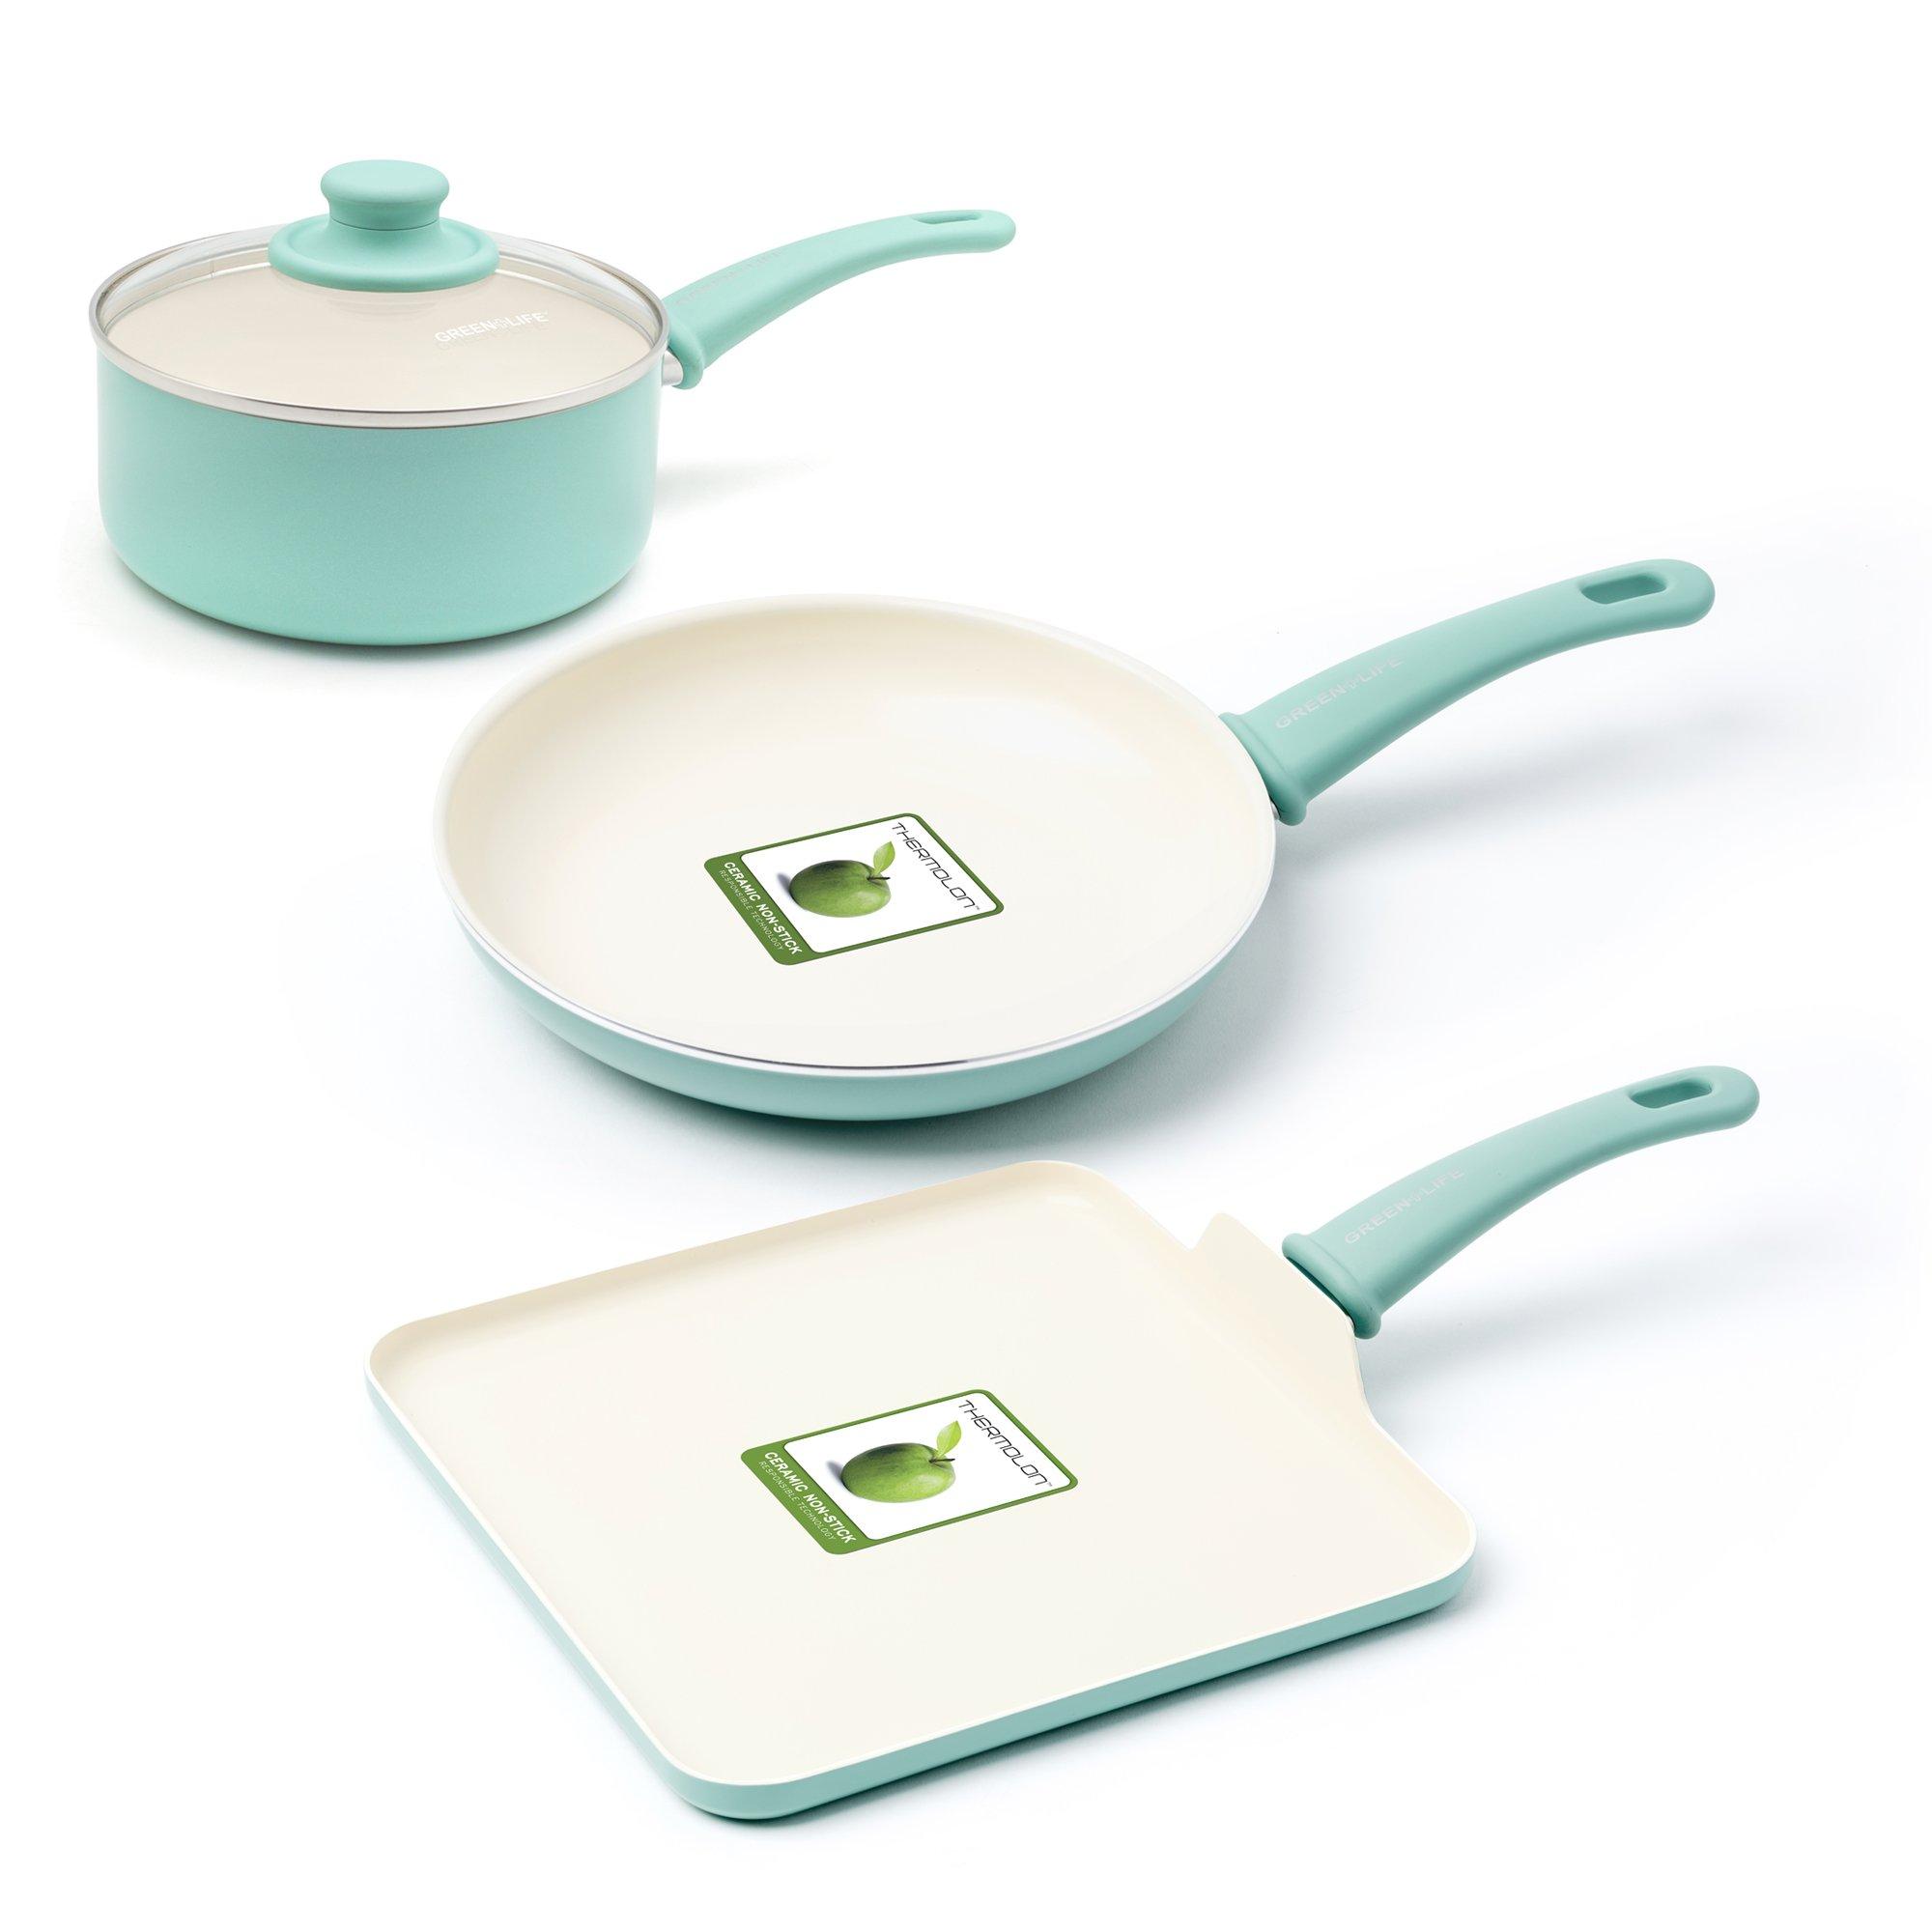 GreenLife CC000884-001 Soft Grip Absolutely Toxin-Free Healthy Ceramic Nonstick Dishwasher/Oven Safe Stay Cool Handle Cookware Set, 4-Piece, Turquoise